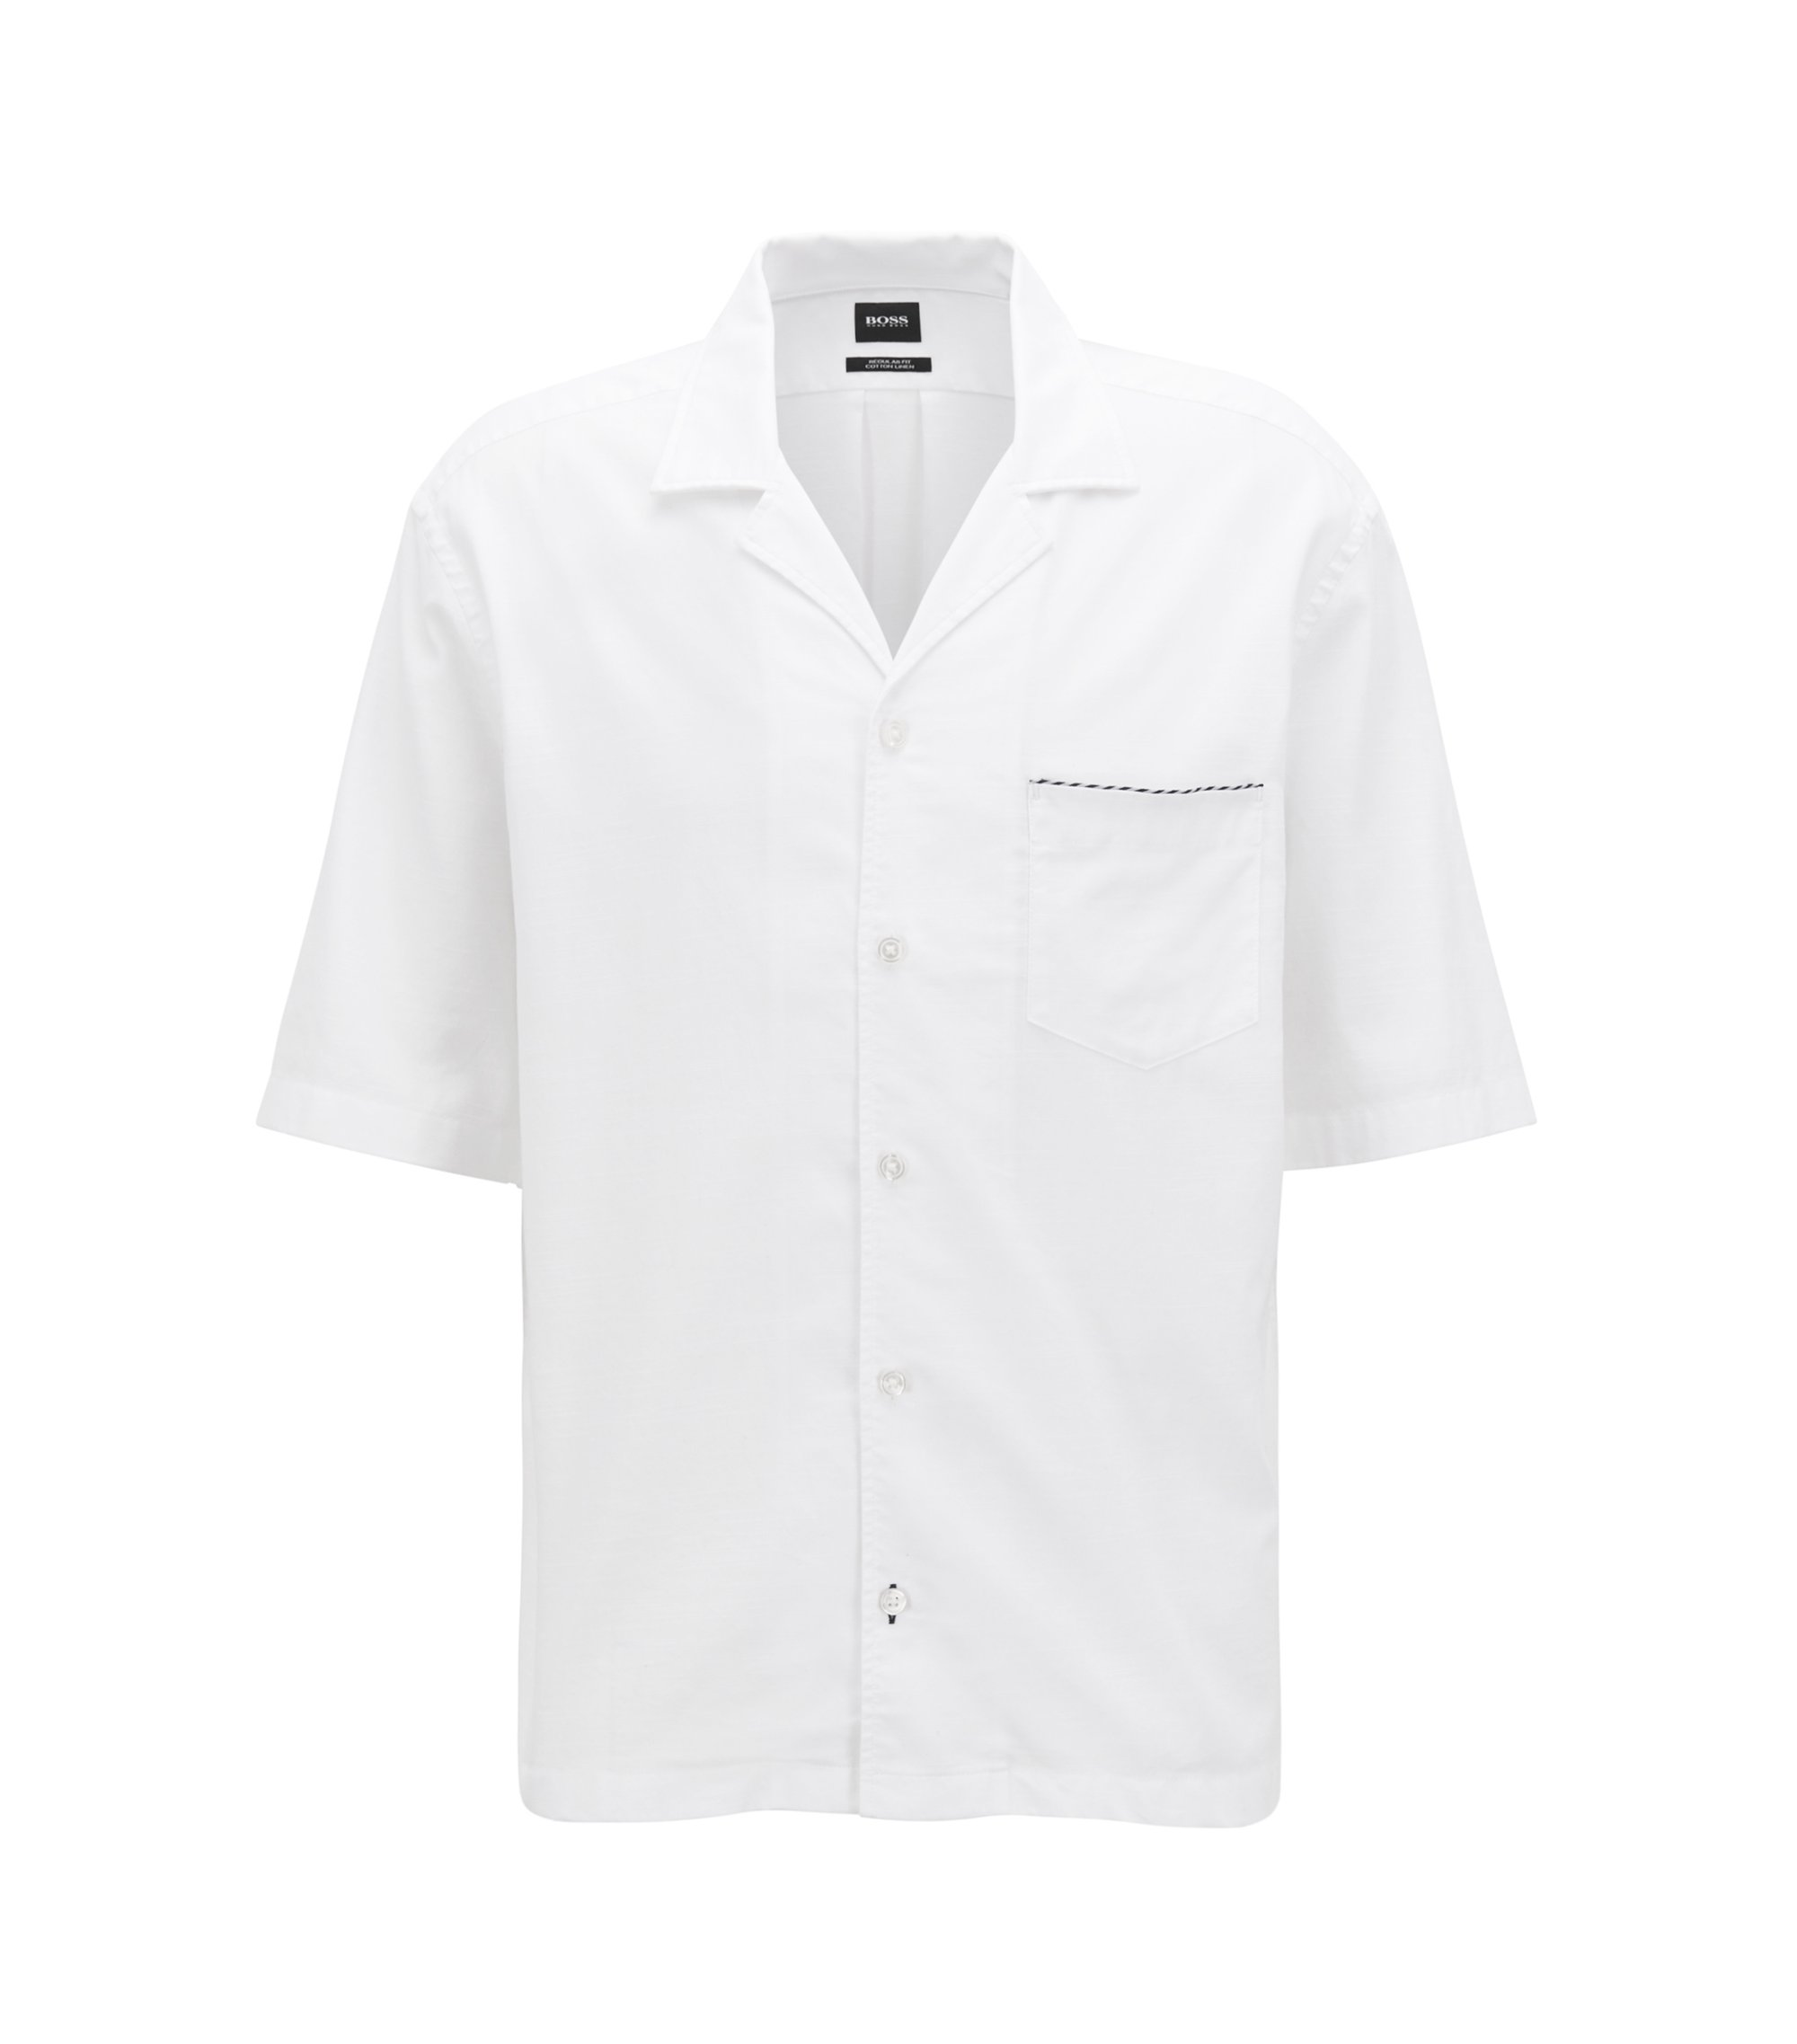 Cotton Linen Sport Shirt, Regular Fit | Lello P, White